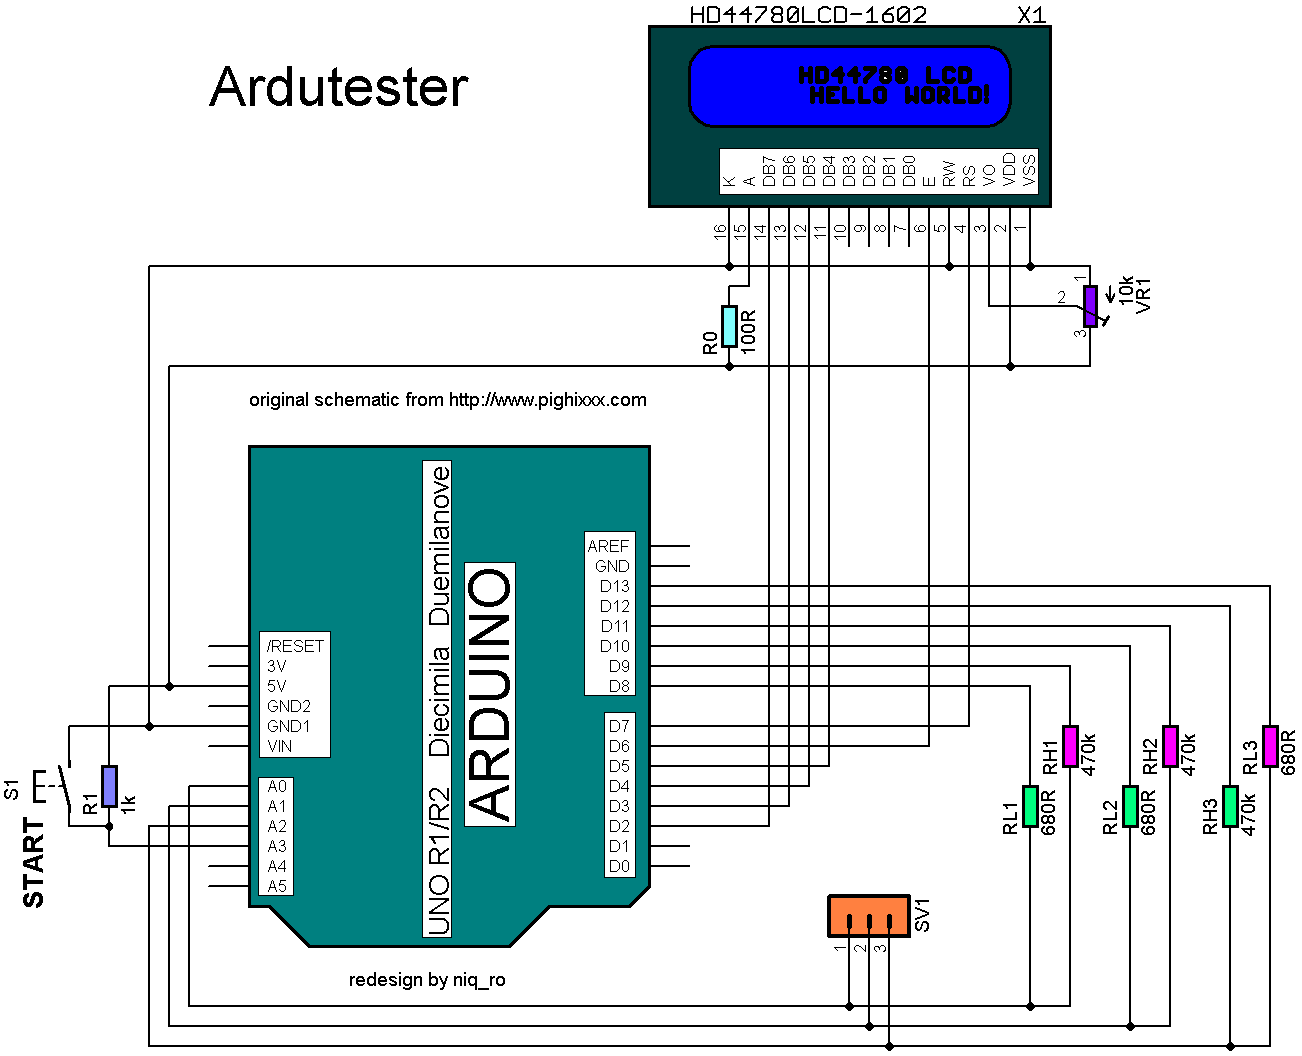 Ardutester_full_schematic_rev1.PNG